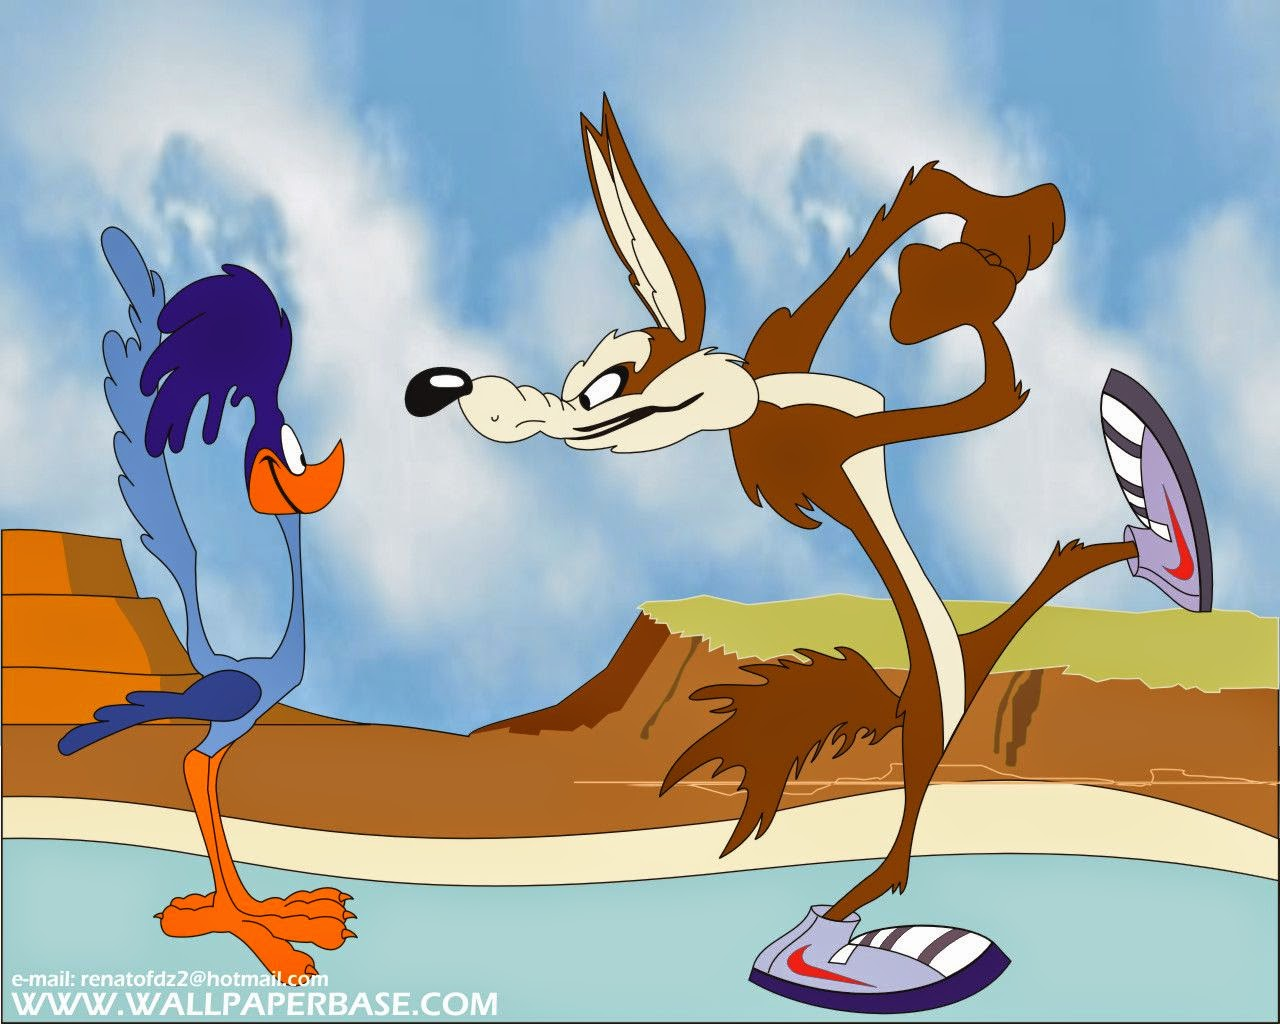 Wile e coyote and the road runner free printable invitations or cards oh my fiesta in english - Dessin de coyote ...